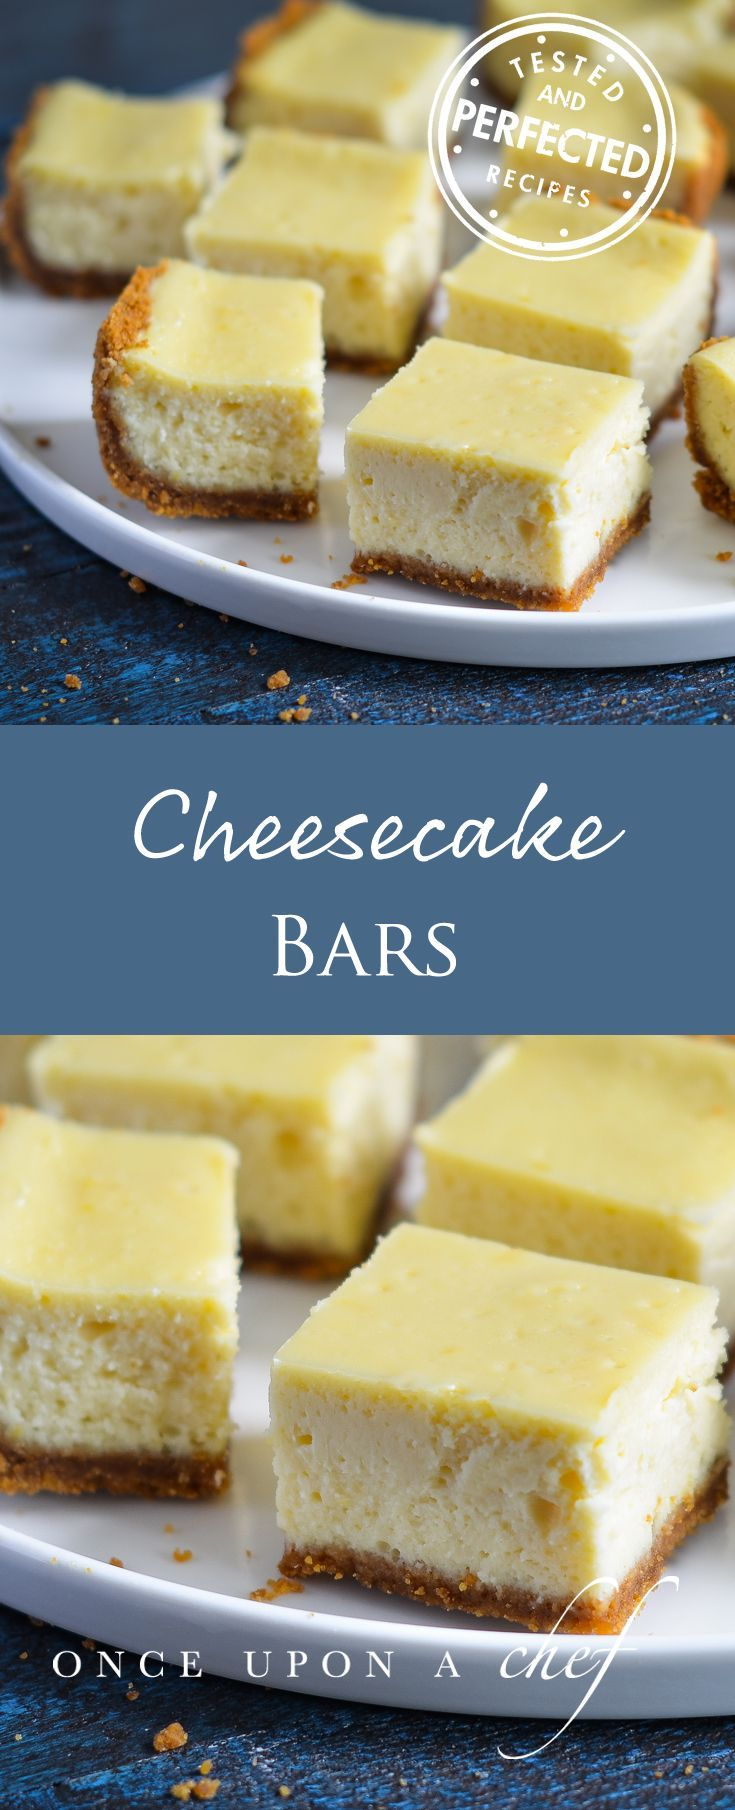 Delicious creamy cheesecake bars make the perfect, simple dessert! Make ahead for the holidays! #testedandperfected